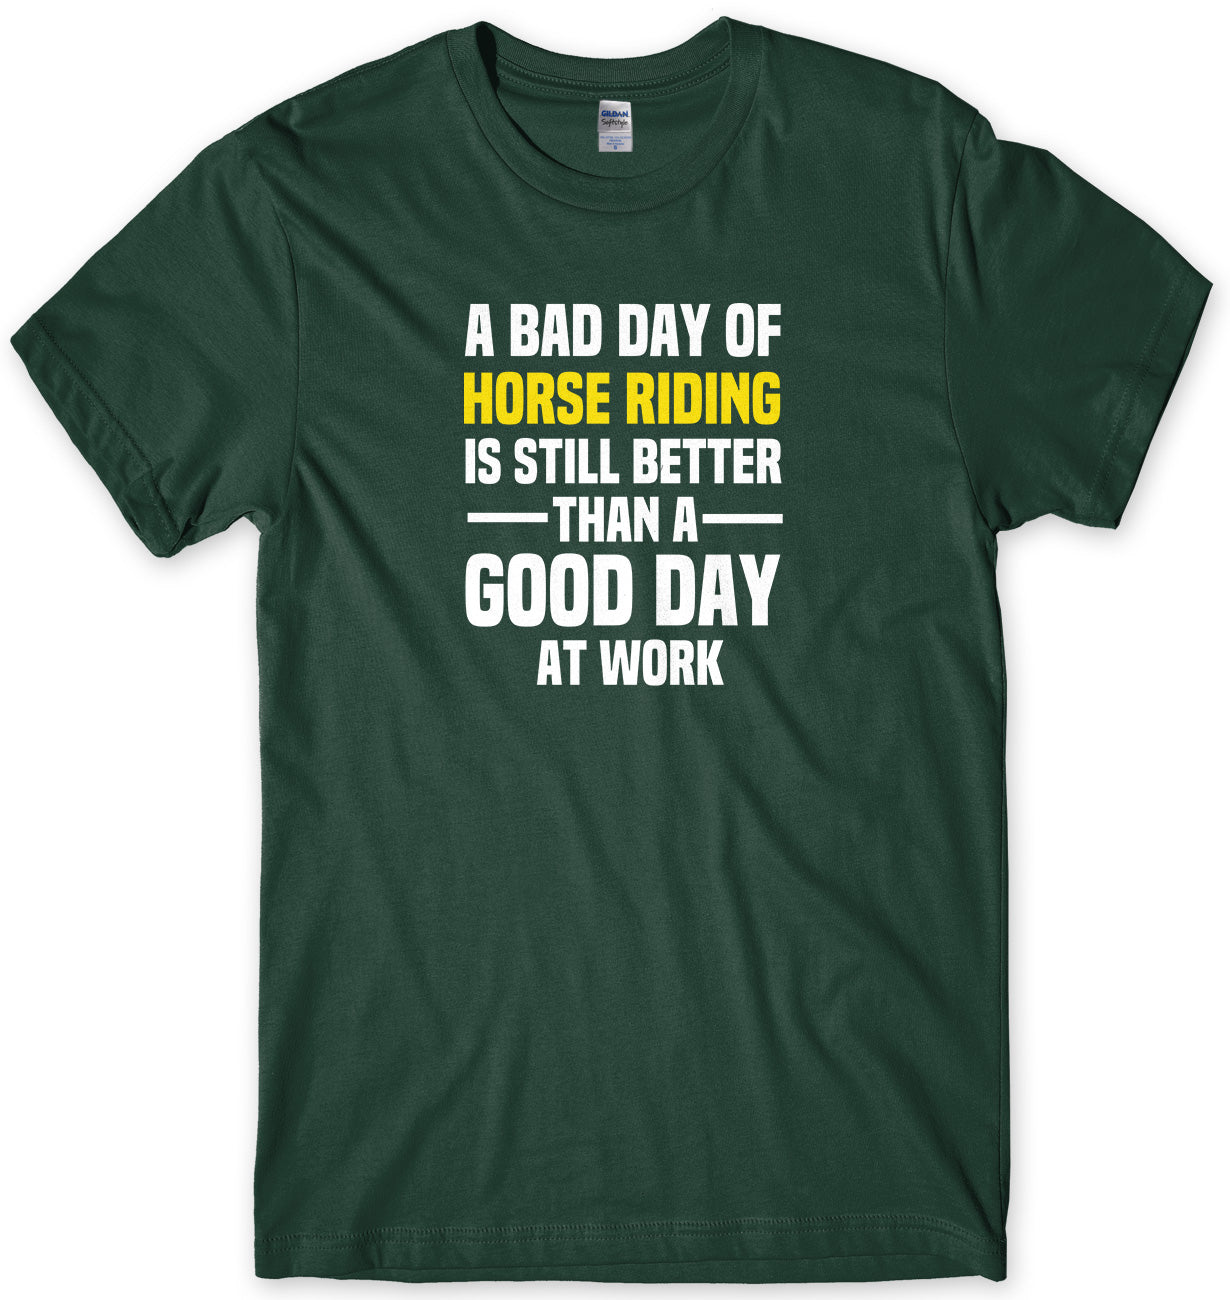 A BAD DAY OF HORSE RIDING IS STILL BETTER THAN A GOOD DAY AT WORK MENS FUNNY SLOGAN UNISEX T-SHIRT - StreetSide Surgeons